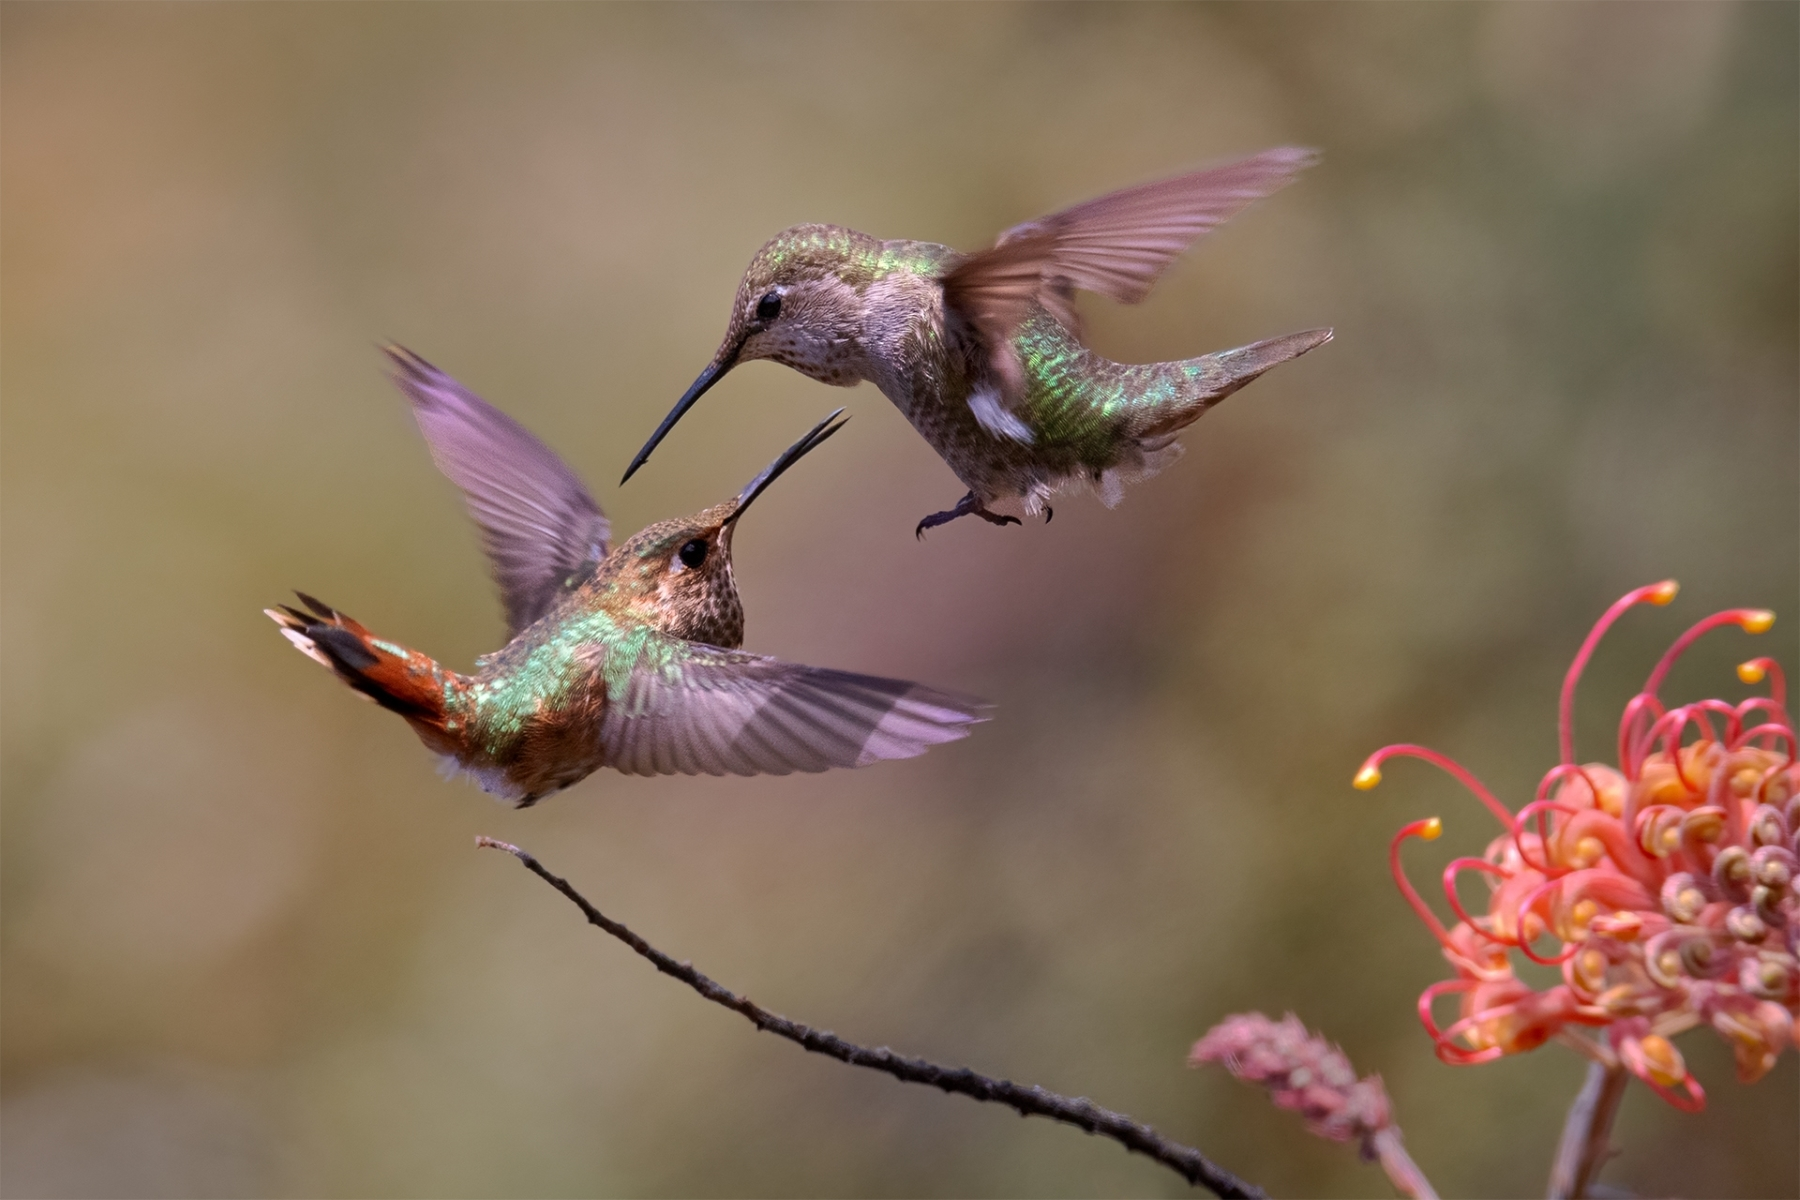 Female-Allens-And-Annas-Hummingbird-Face-Off-Over-A-Food-Source-NM-1-Place-by-Bruce-Finocchio-PE